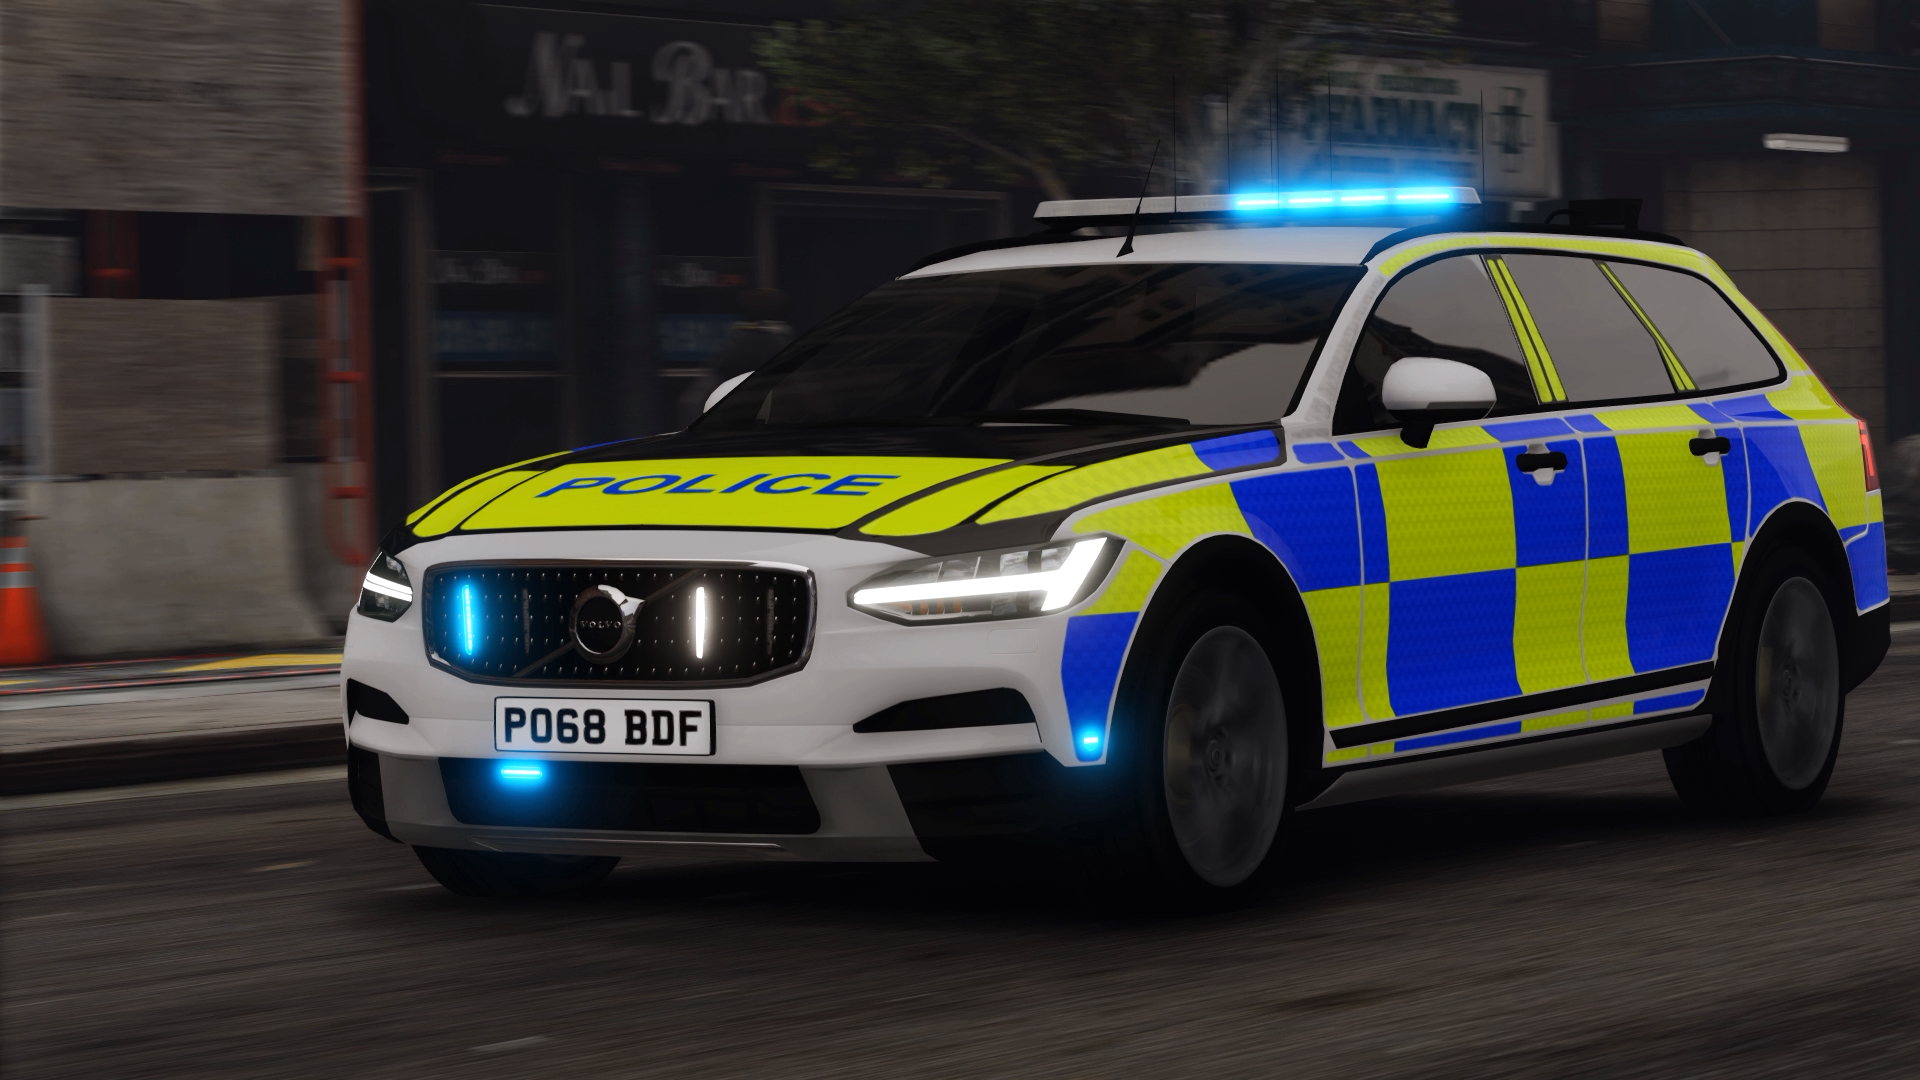 2018/2019 Volvo V90 Cross Country Marked & Unmarked (ELS